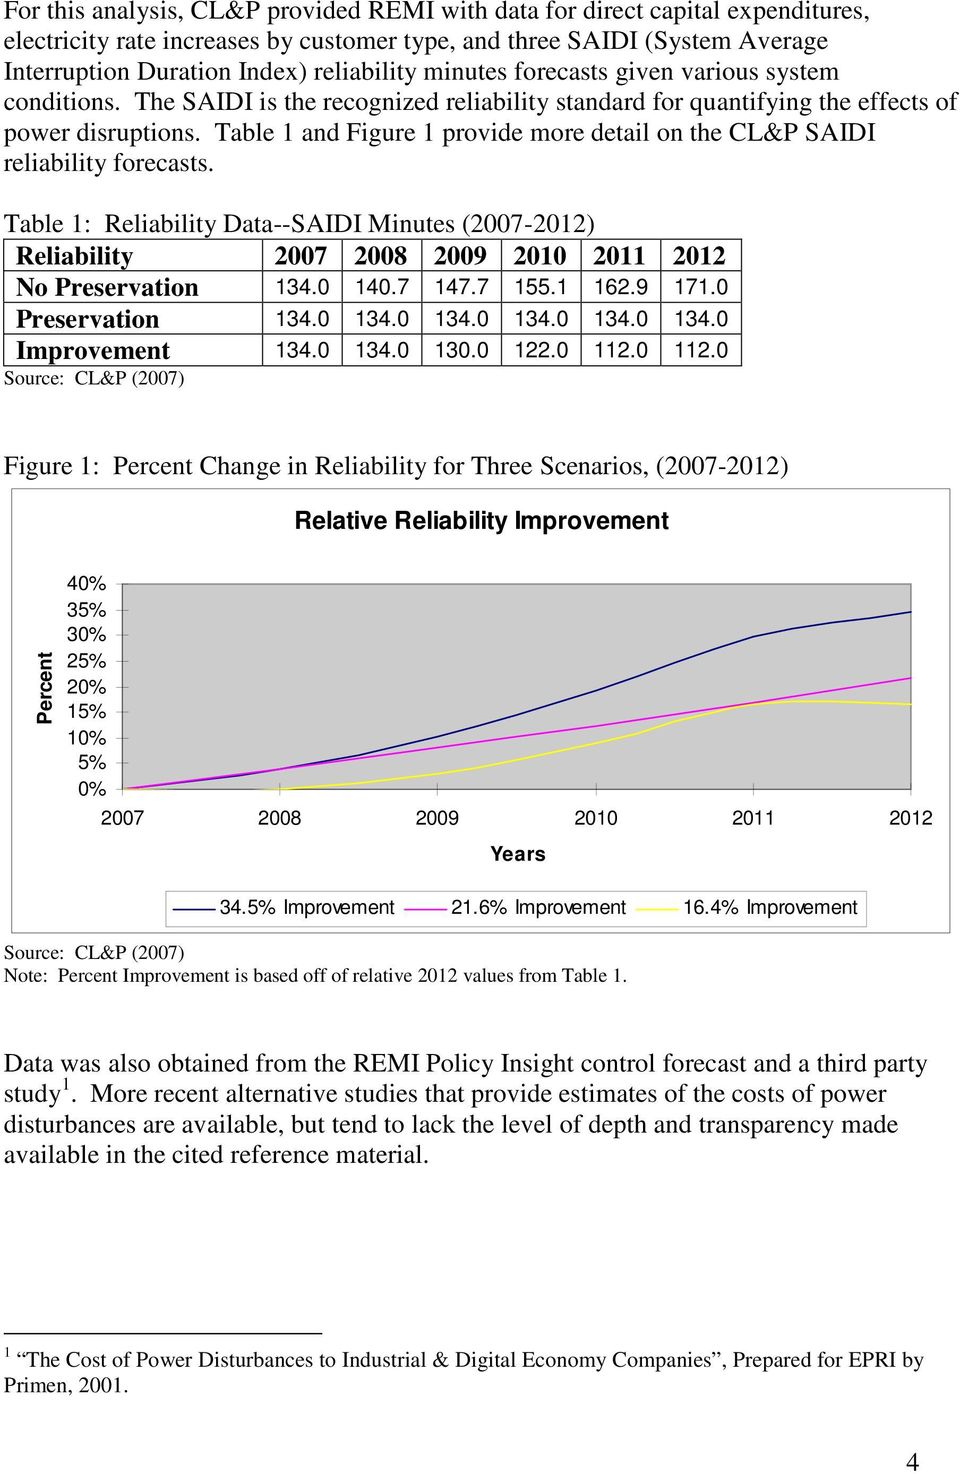 Table 1 and Figure 1 provide more detail on the CL&P SAIDI reliability forecasts. Table 1: Reliability Data--SAIDI Minutes (2007-2012) Reliability 2007 2008 2009 2010 2011 2012 No Preservation 134.